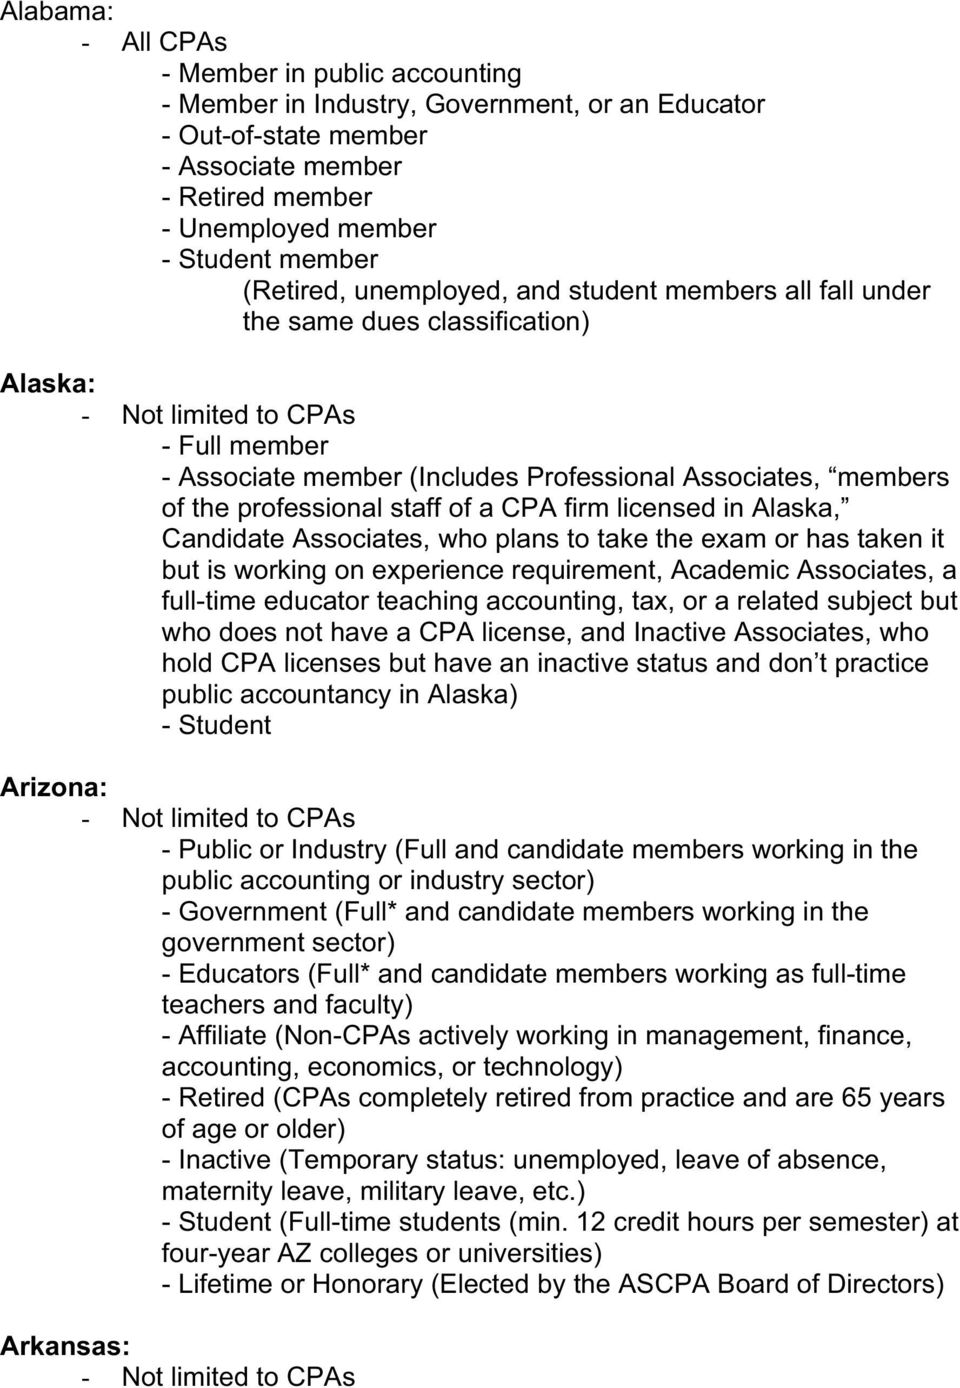 Alaska, Candidate Associates, who plans to take the exam or has taken it but is working on experience requirement, Academic Associates, a full-time educator teaching accounting, tax, or a related